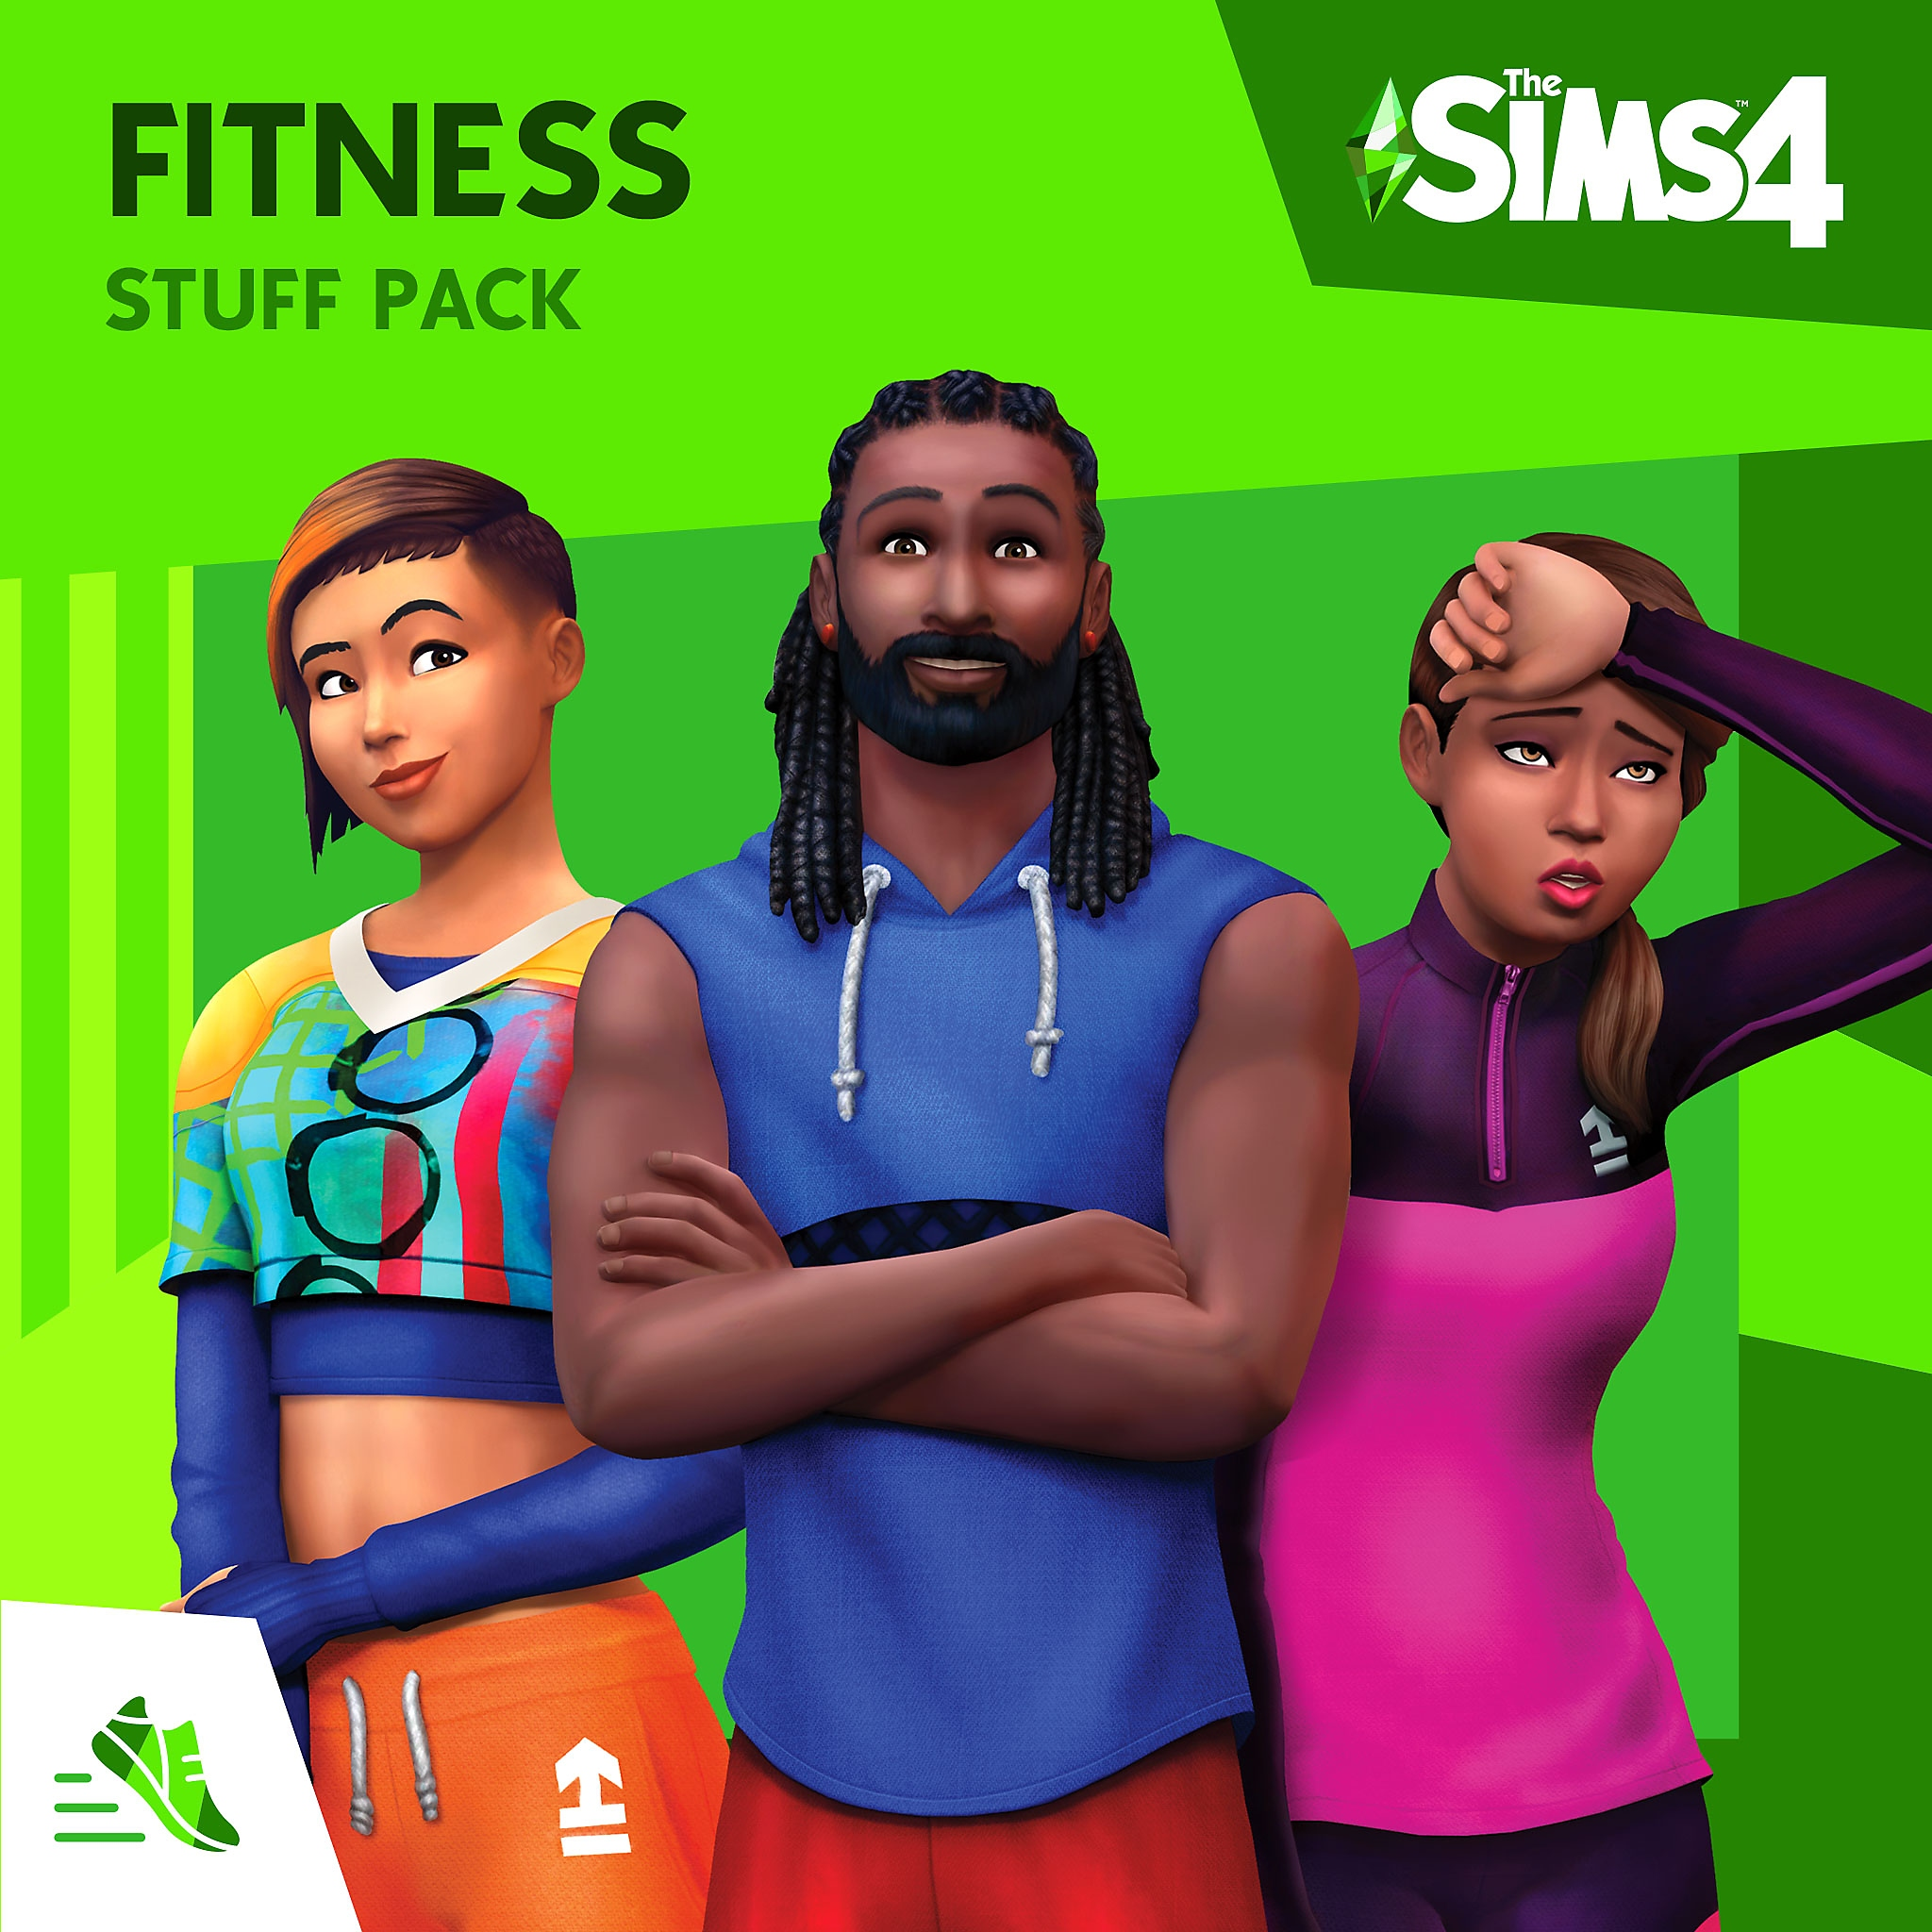 Fitness Stuff Pack